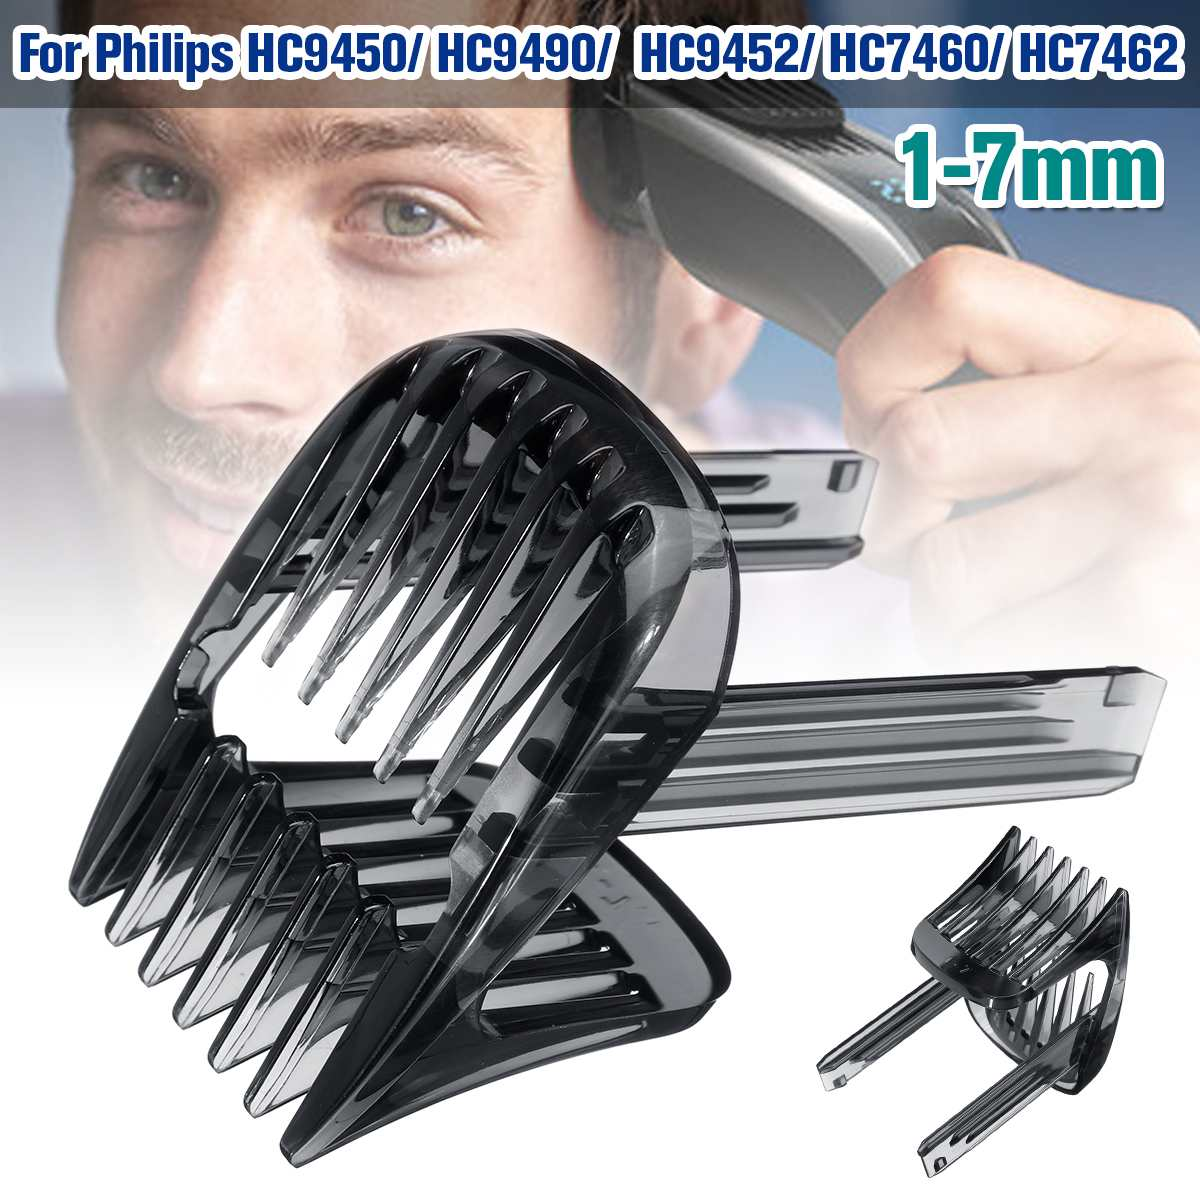 1pcs Hair Clipper Comb For Philips HC9450 HC9490 HC9452 HC7460 HC7462 Hair Trimmer 1-7mm Replacement Comb